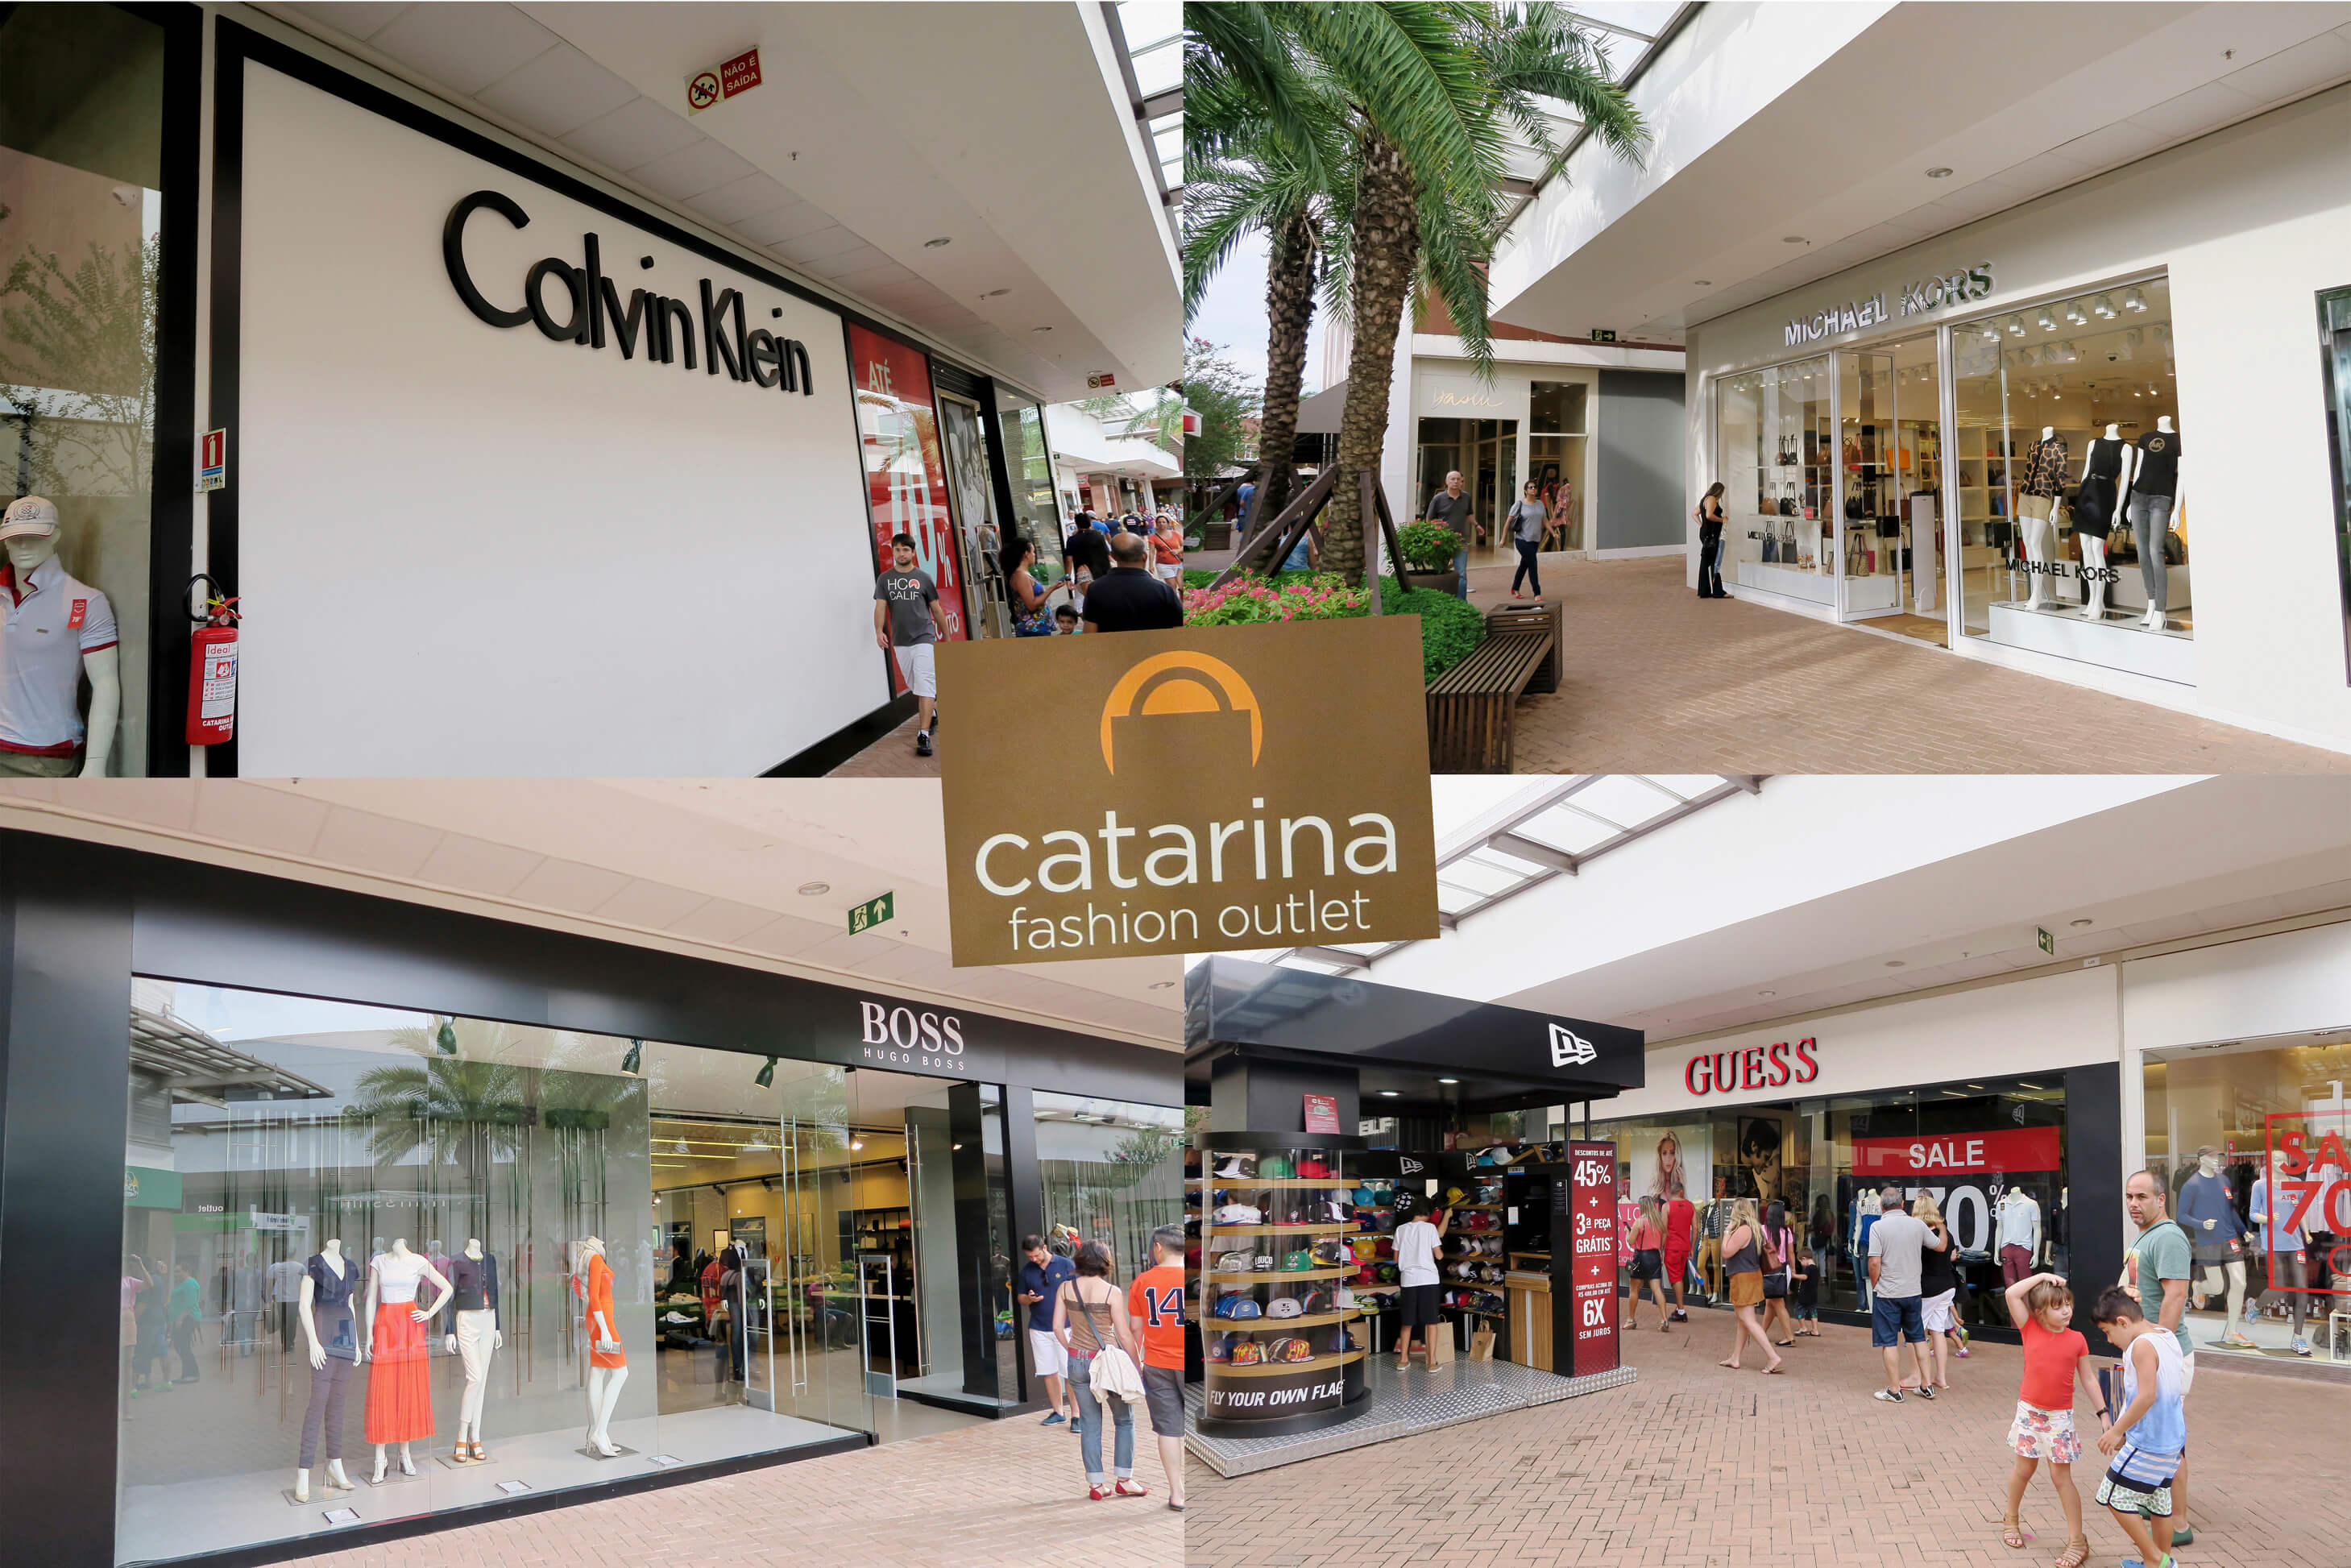 calvin-klein-boss-michael-kors-guess-outlet-catarina